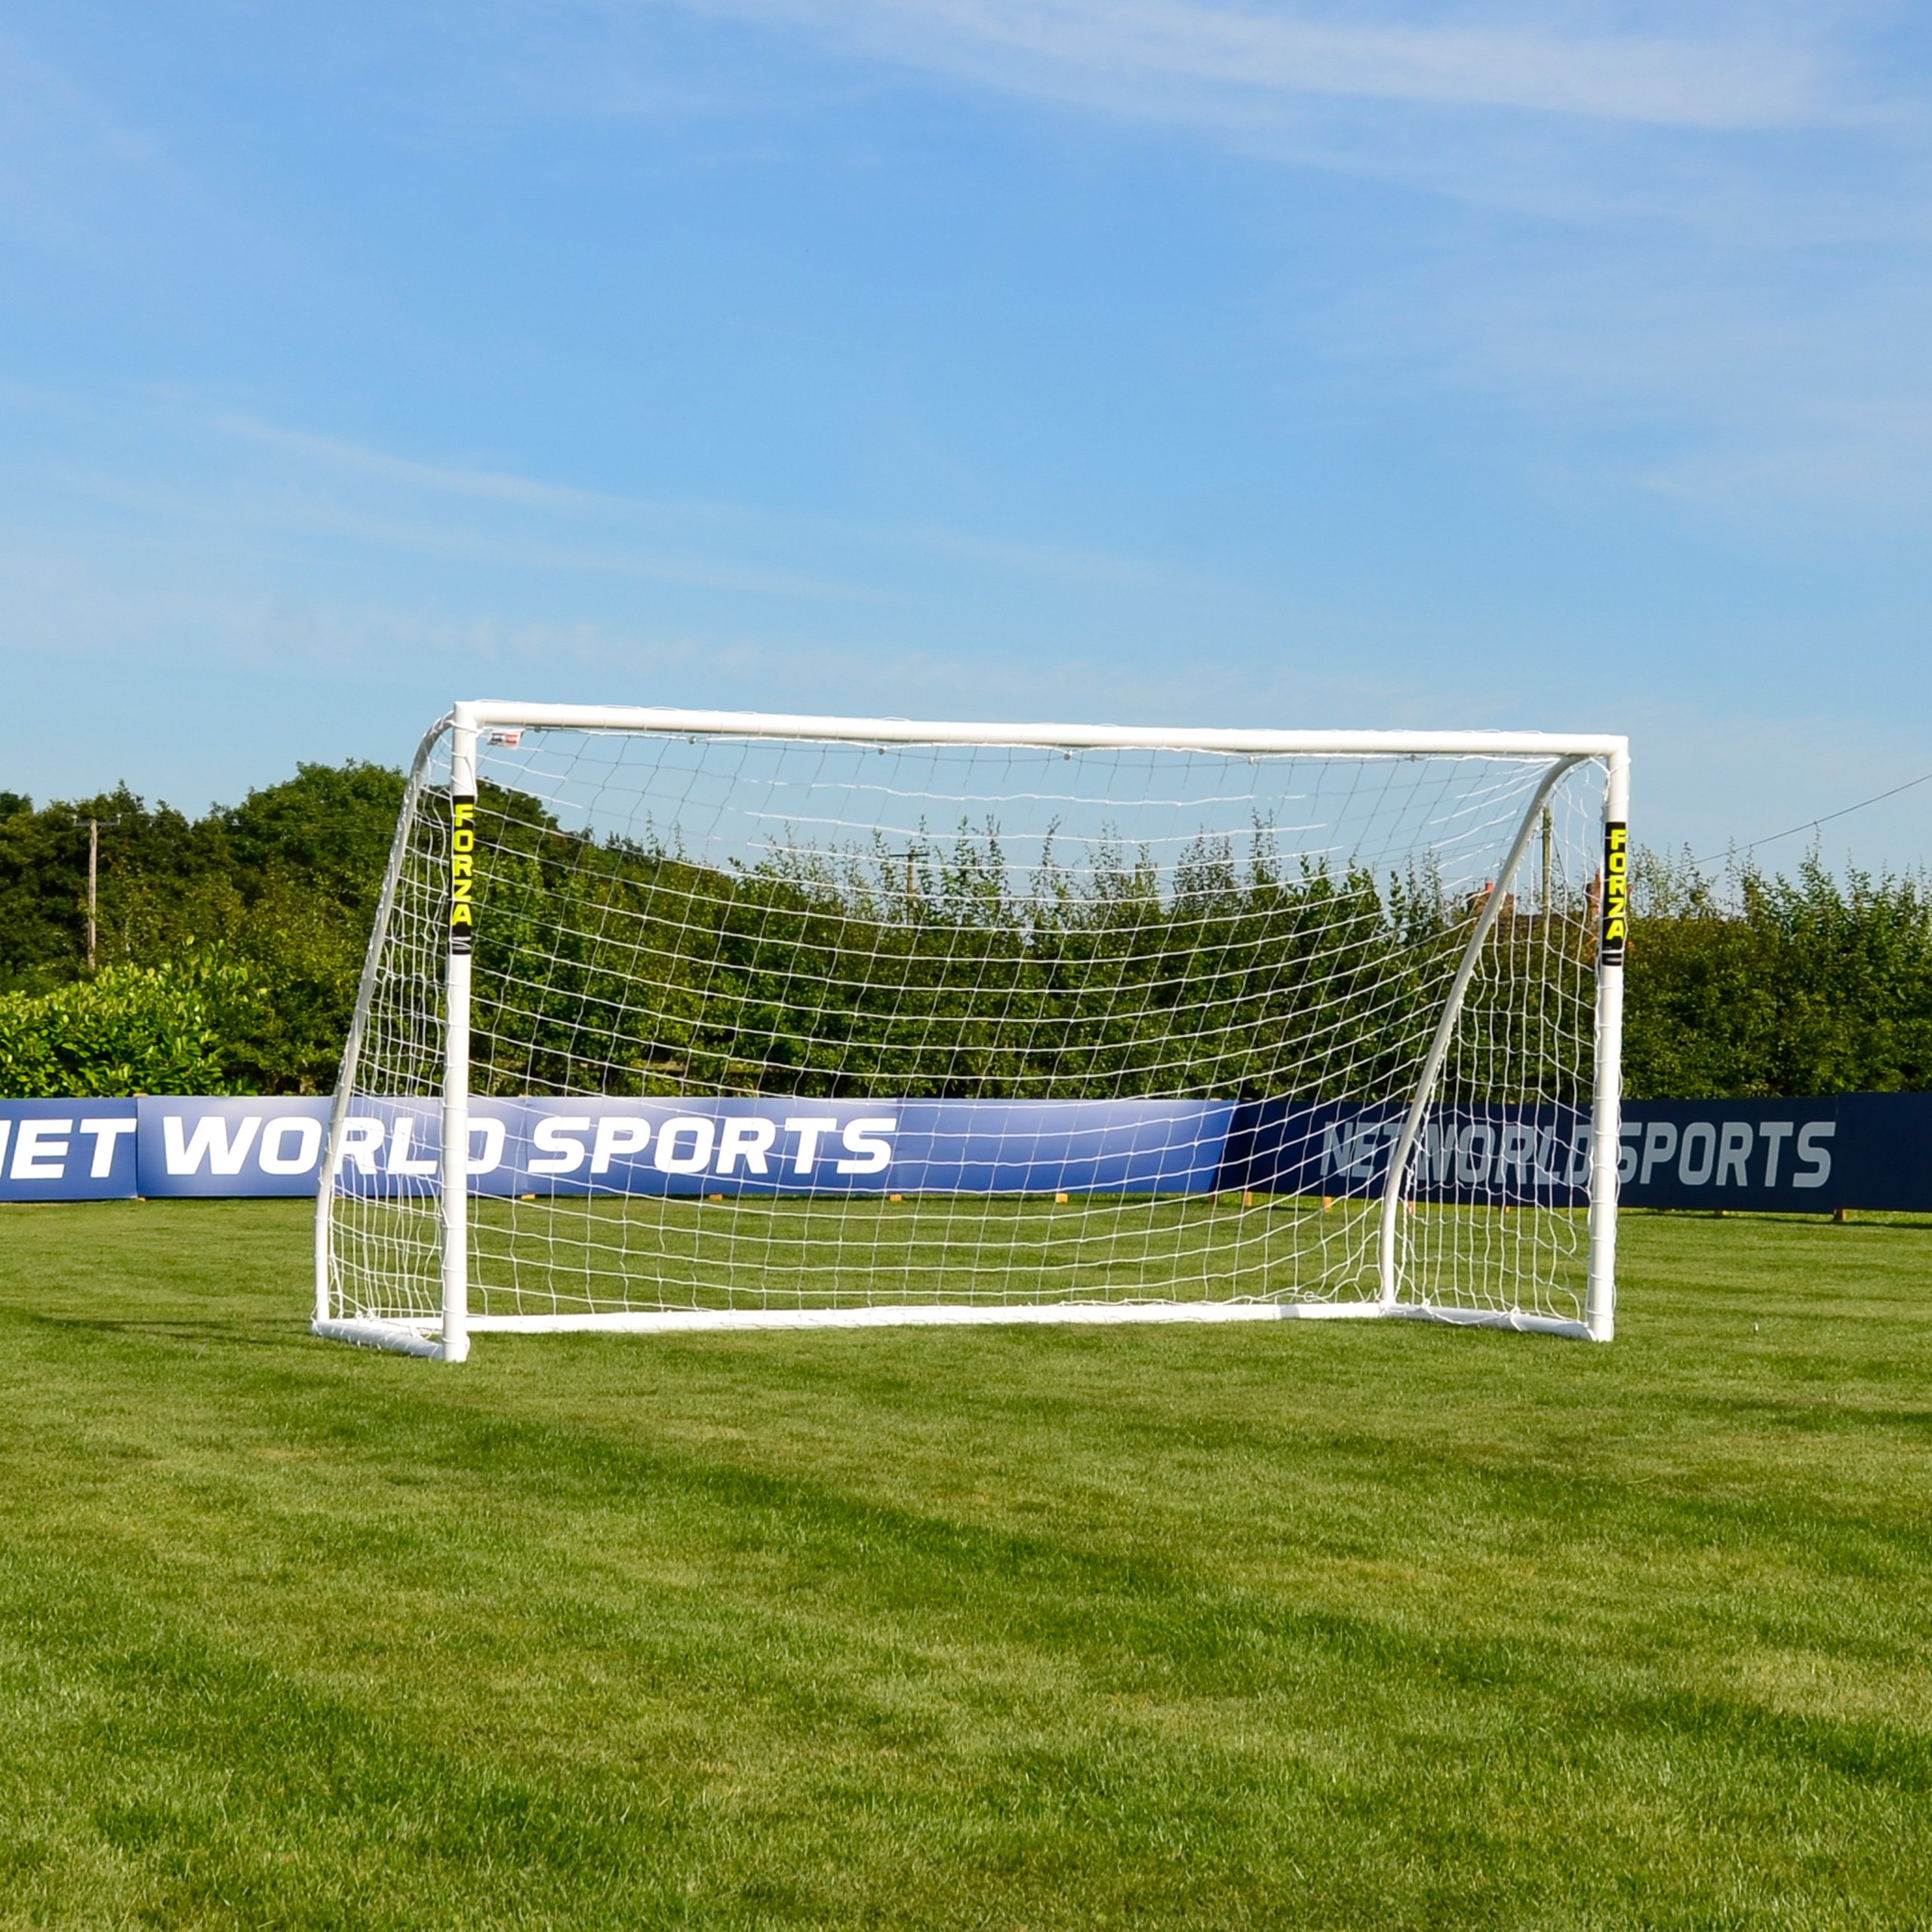 FORZA ''Match Standard'' 12' x 6' Soccer Goal, Net & Target Sheet – Ultimate Backyard Soccer Goal [Net World Sports]